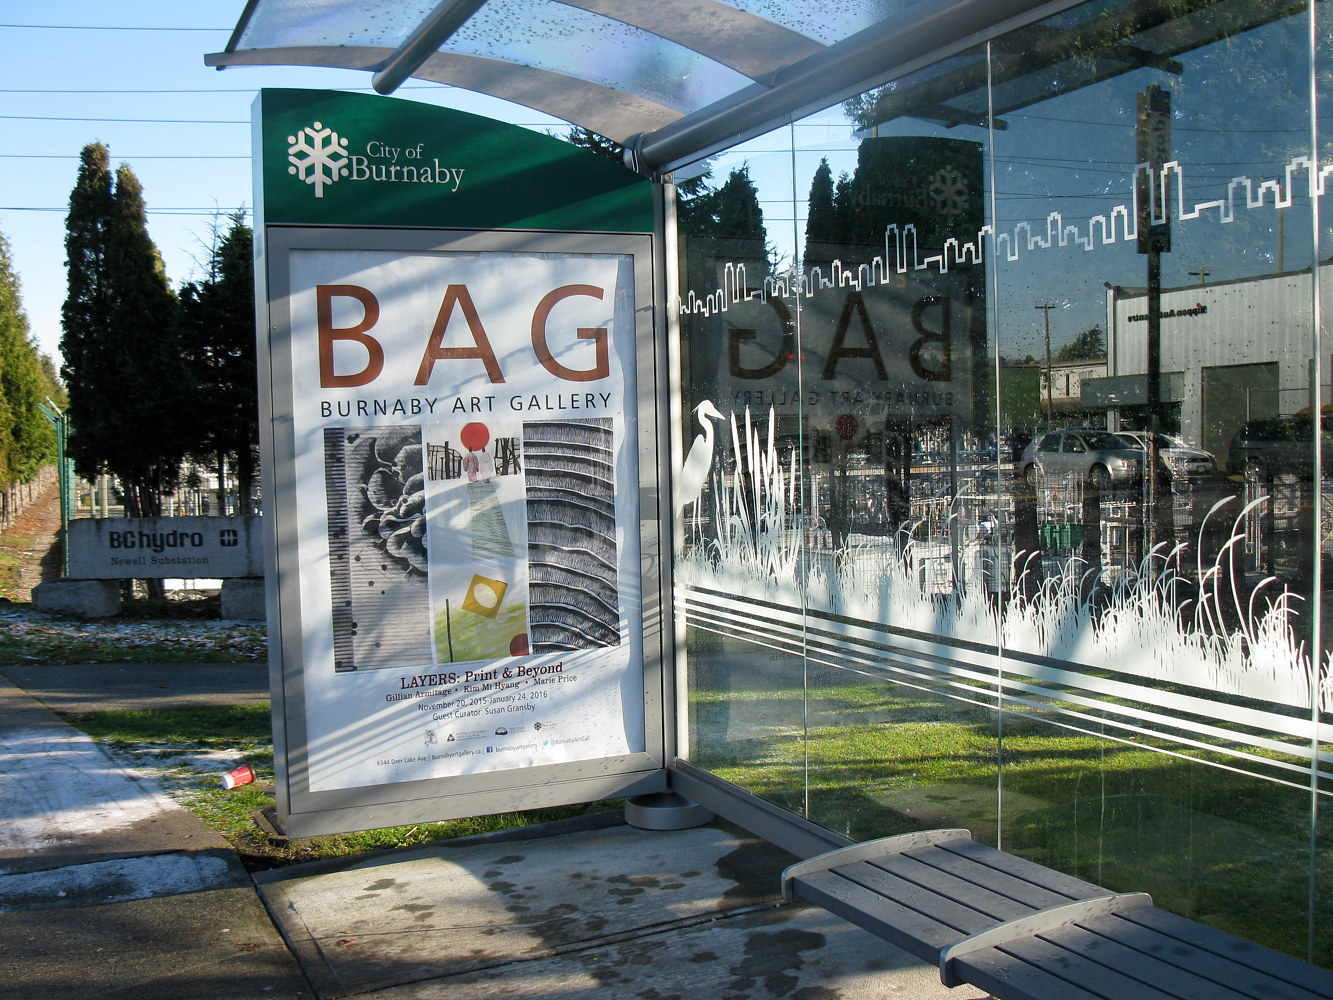 Layers bus shelter ad by Susan Gransby